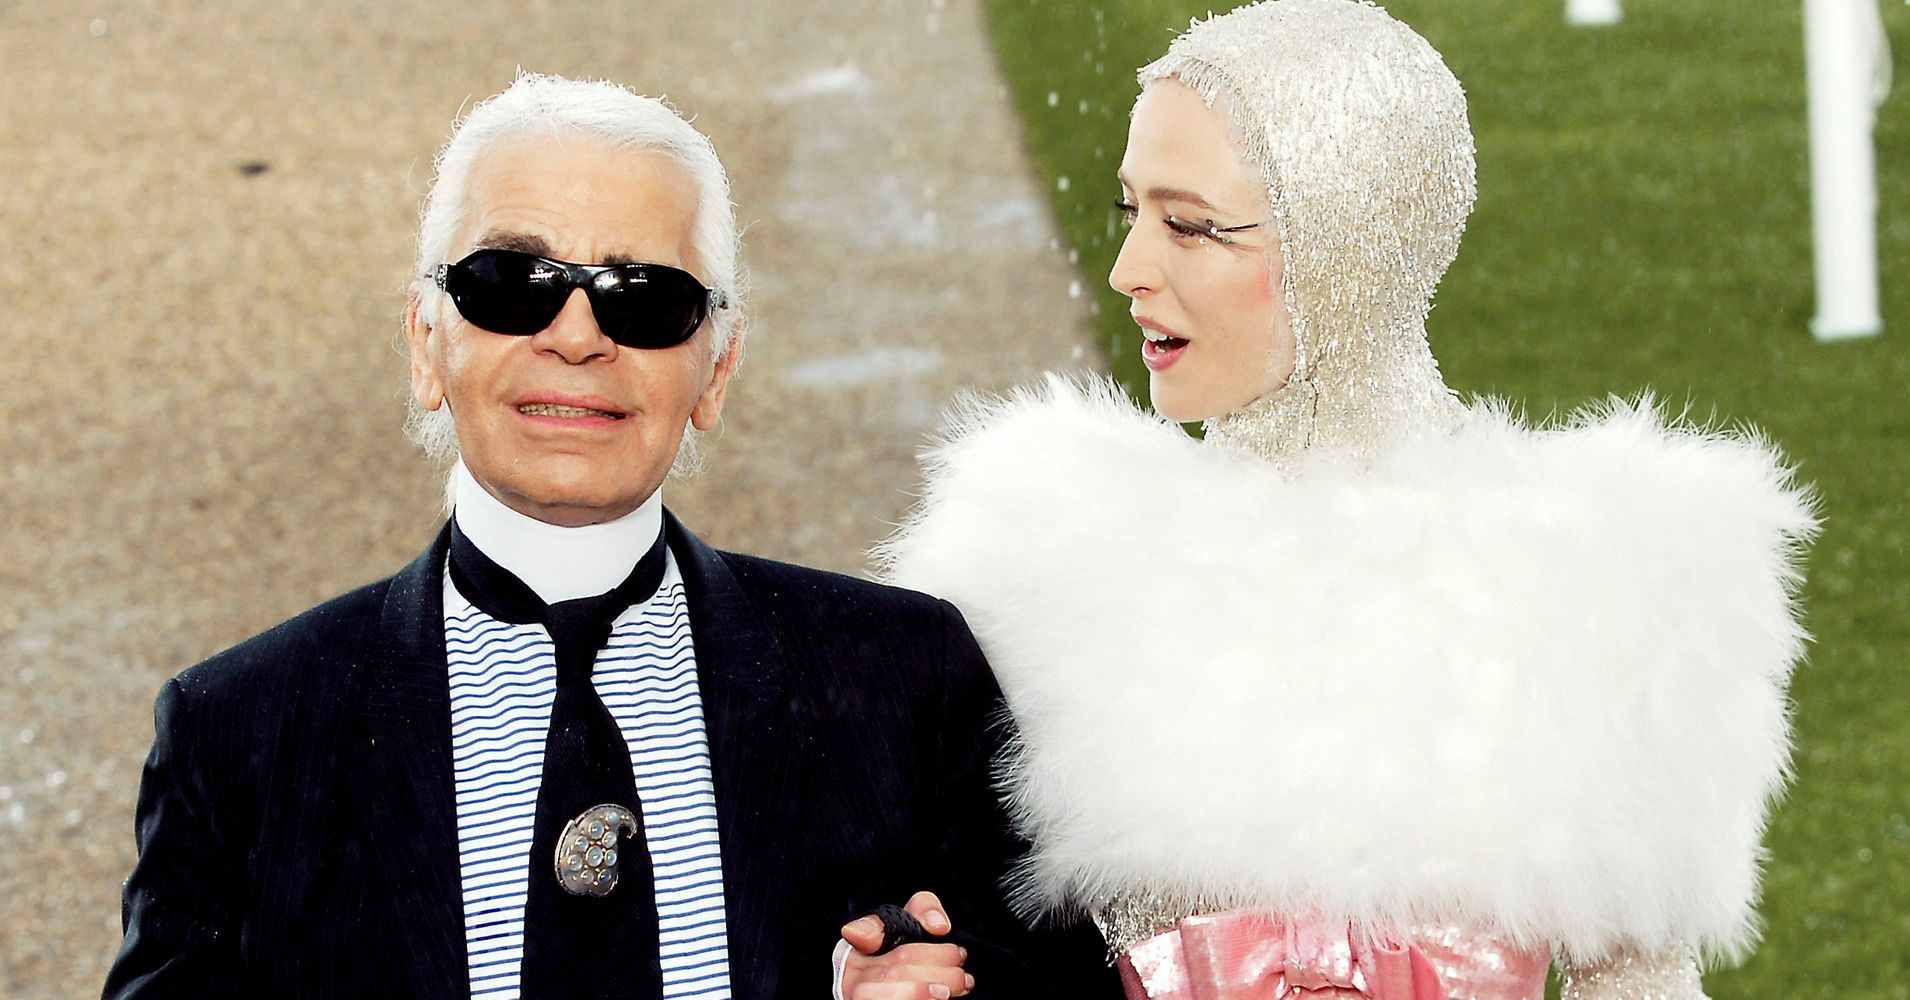 851548cc4964 A Look Back At Designer Karl Lagerfeld's Iconic Fashion Career In Photos |  HuffPost Life